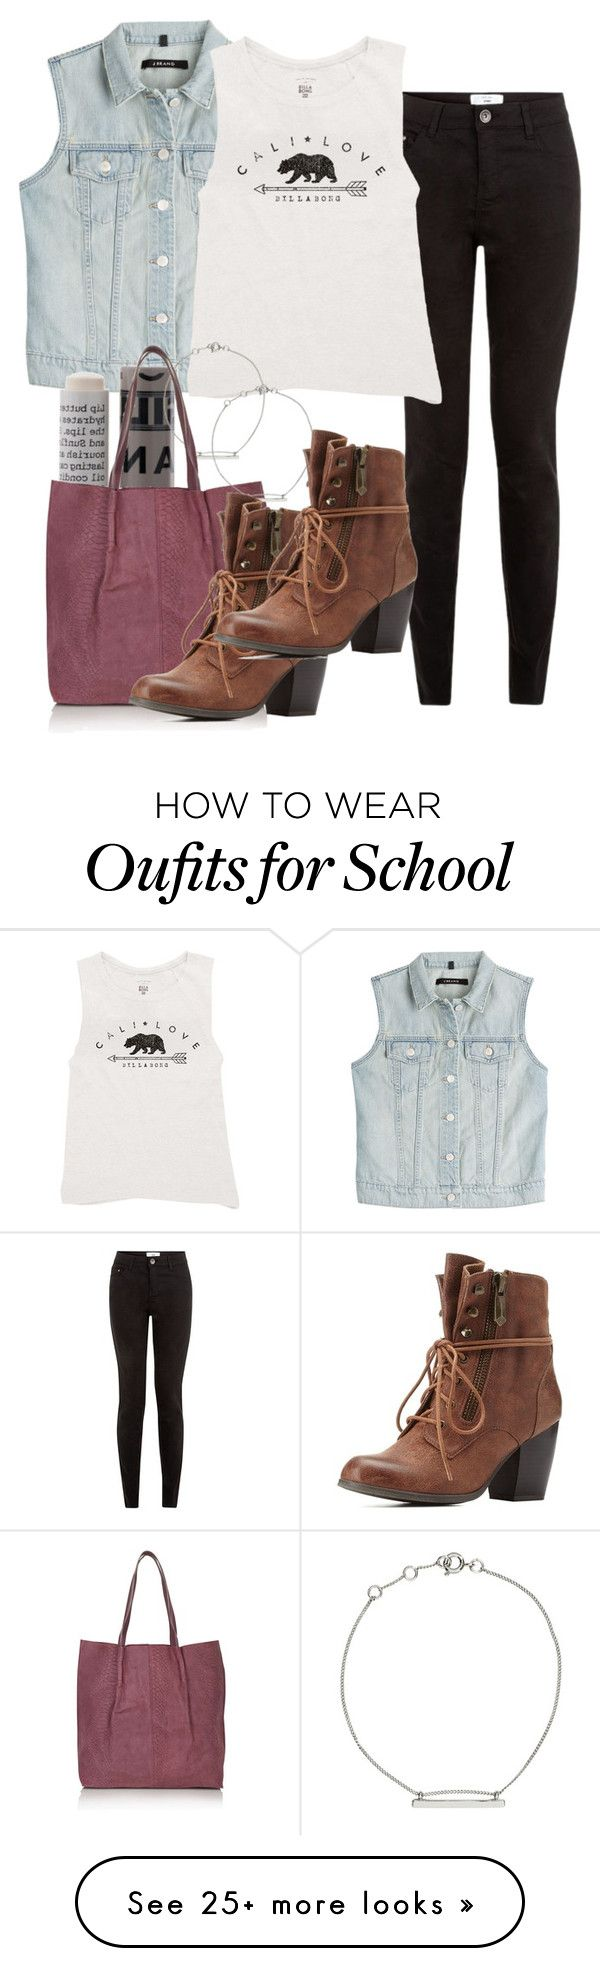 """""""Kai inspired school outfit"""" by tvdstyleblog on Polyvore featuring J Brand, Billabong, Korres, H&M, Topshop, Charlotte Russe, women's clothing, women's fashion, women and female"""